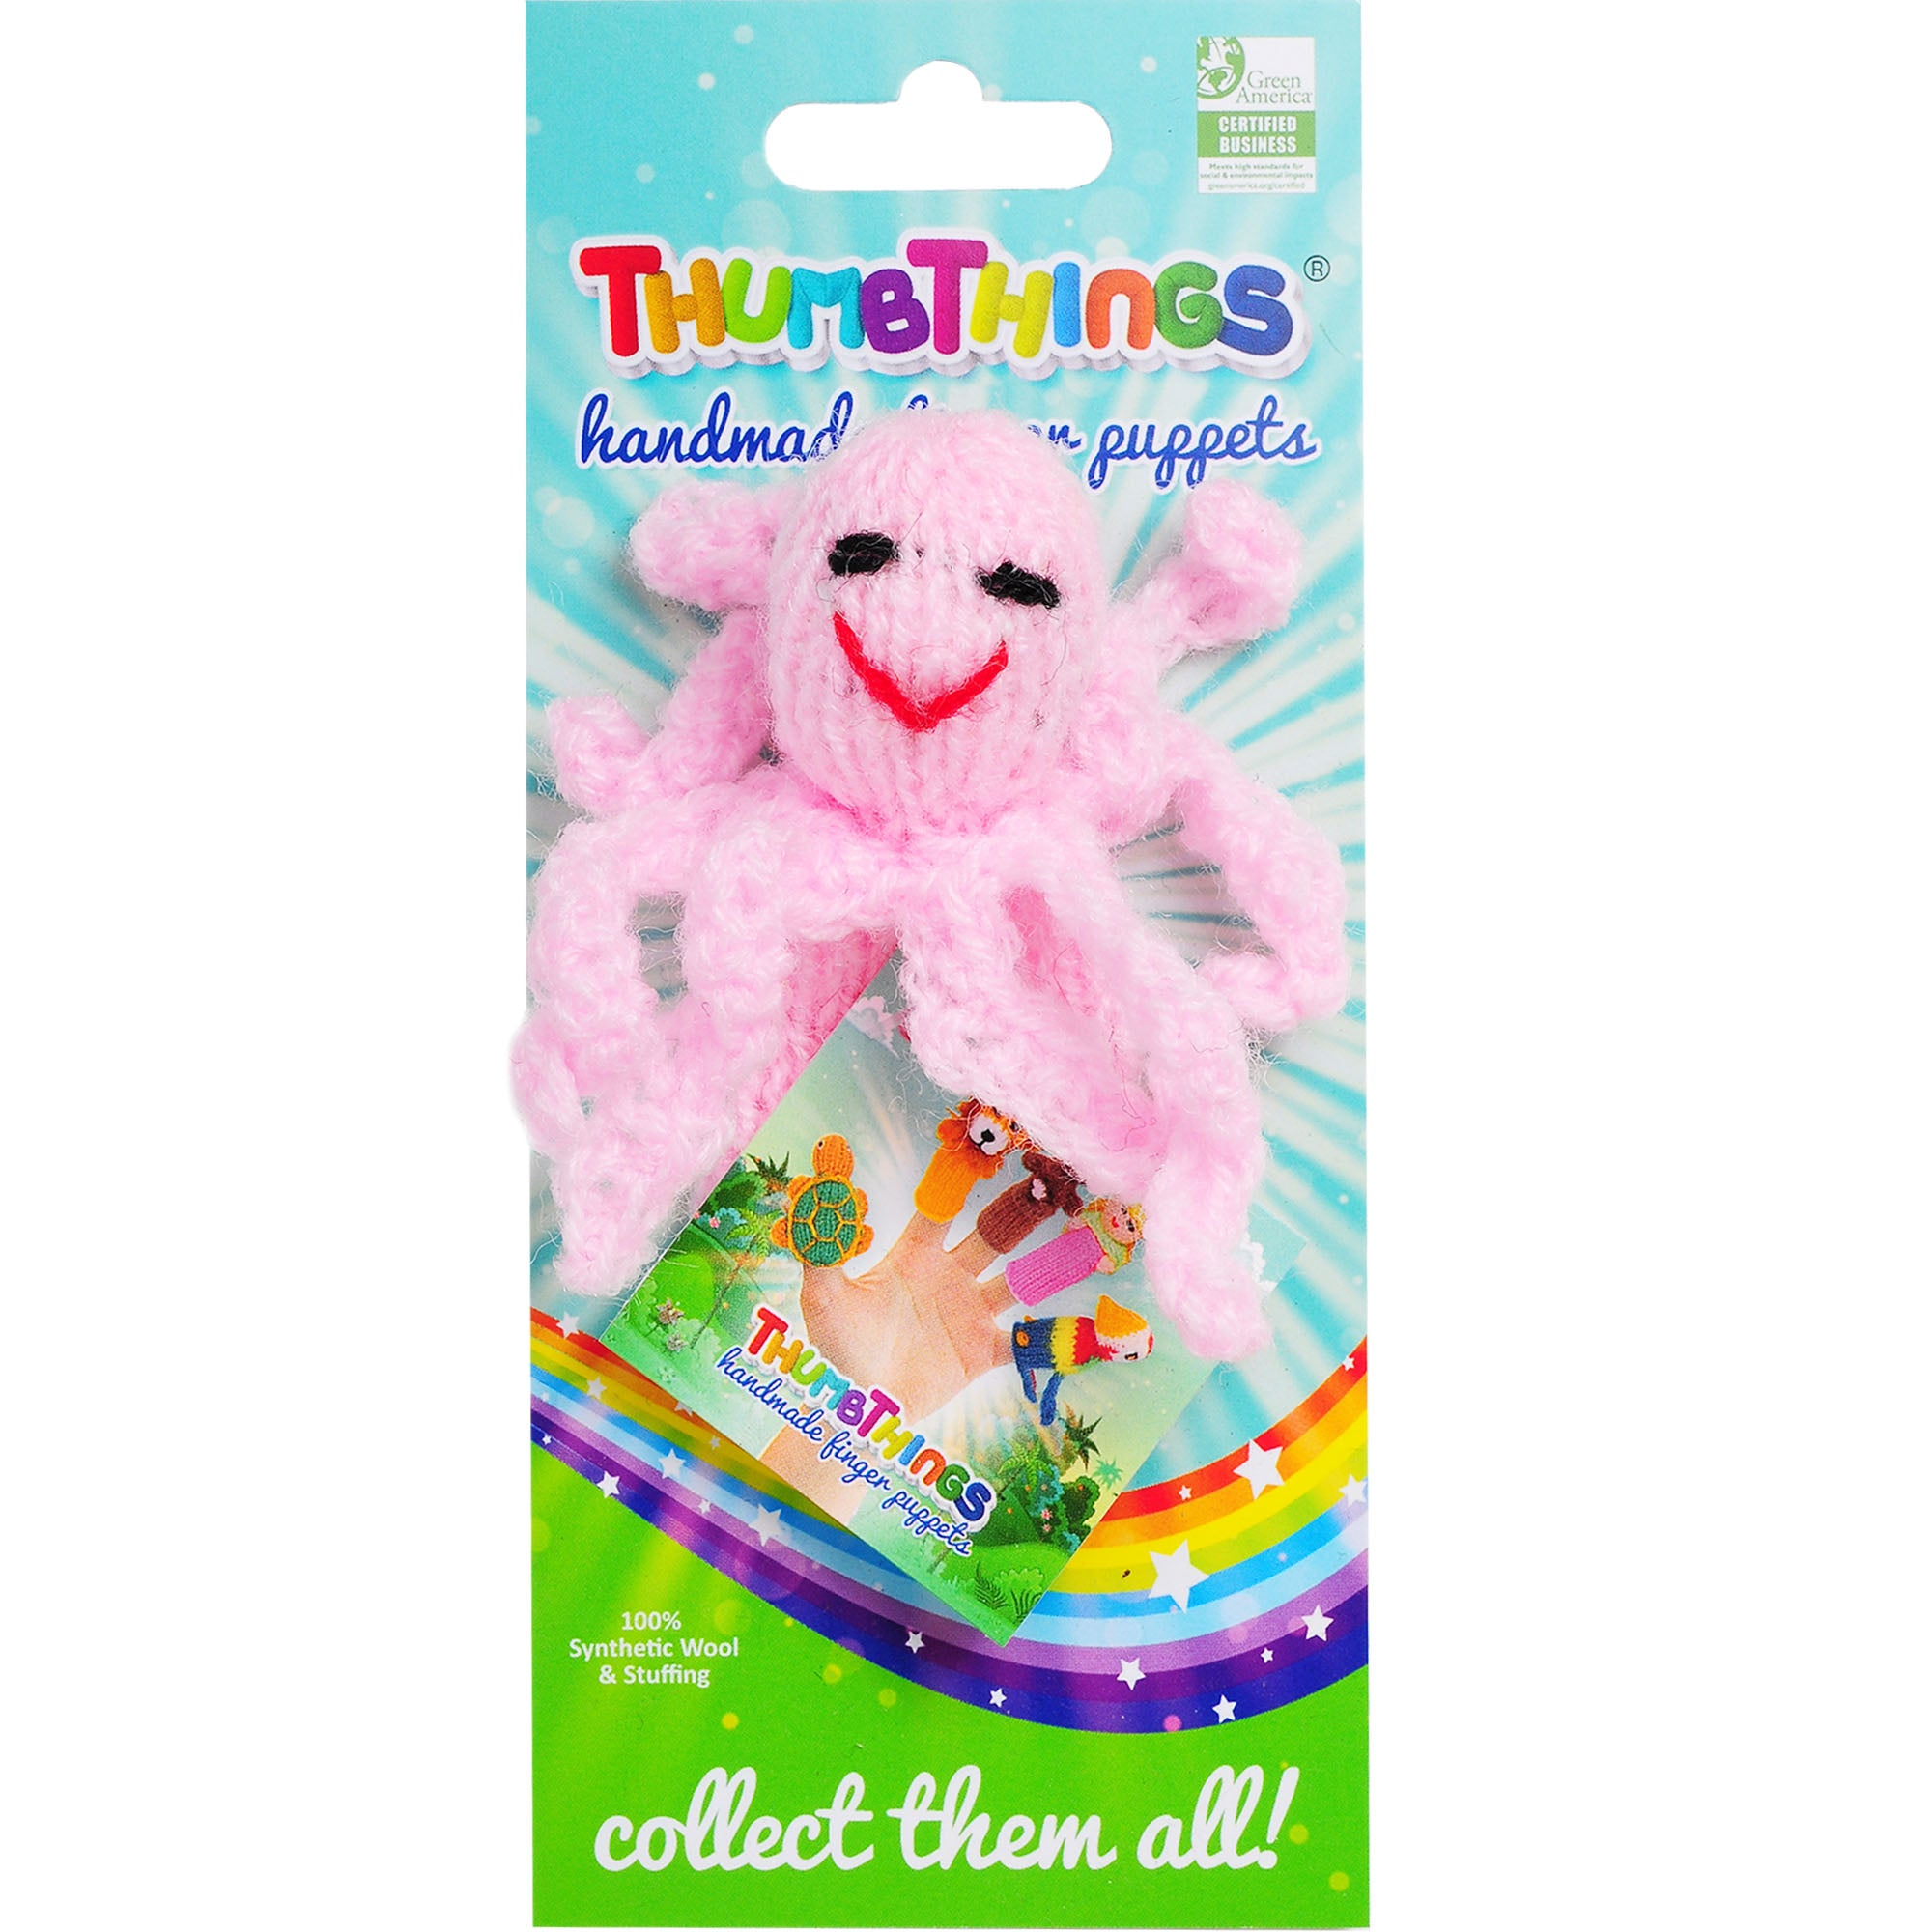 Thumbthings Octopus Finger Puppet